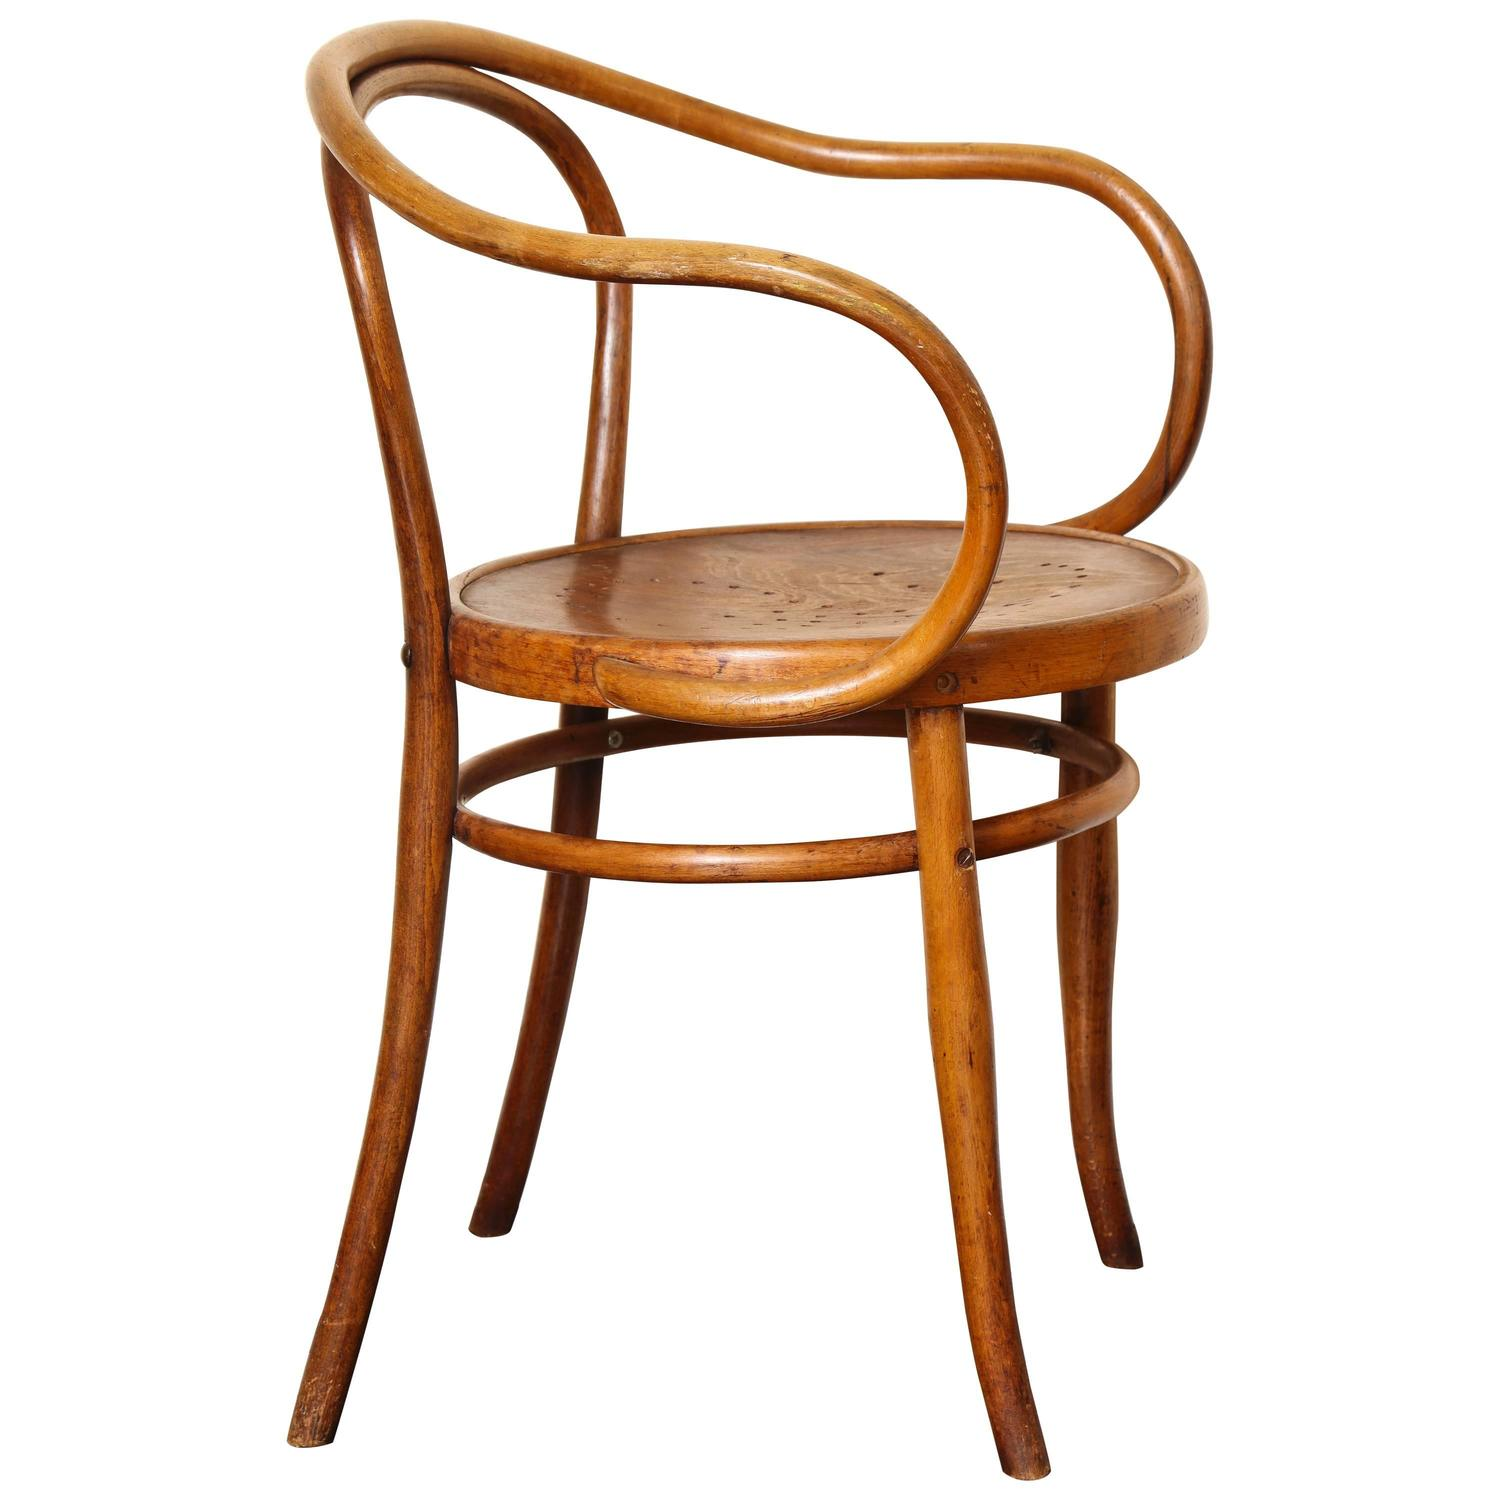 Amazing Bentwood B 9 Chair By Michael Thonet, Manufactured By Jacob And Josef Kohn  For Sale At 1stdibs